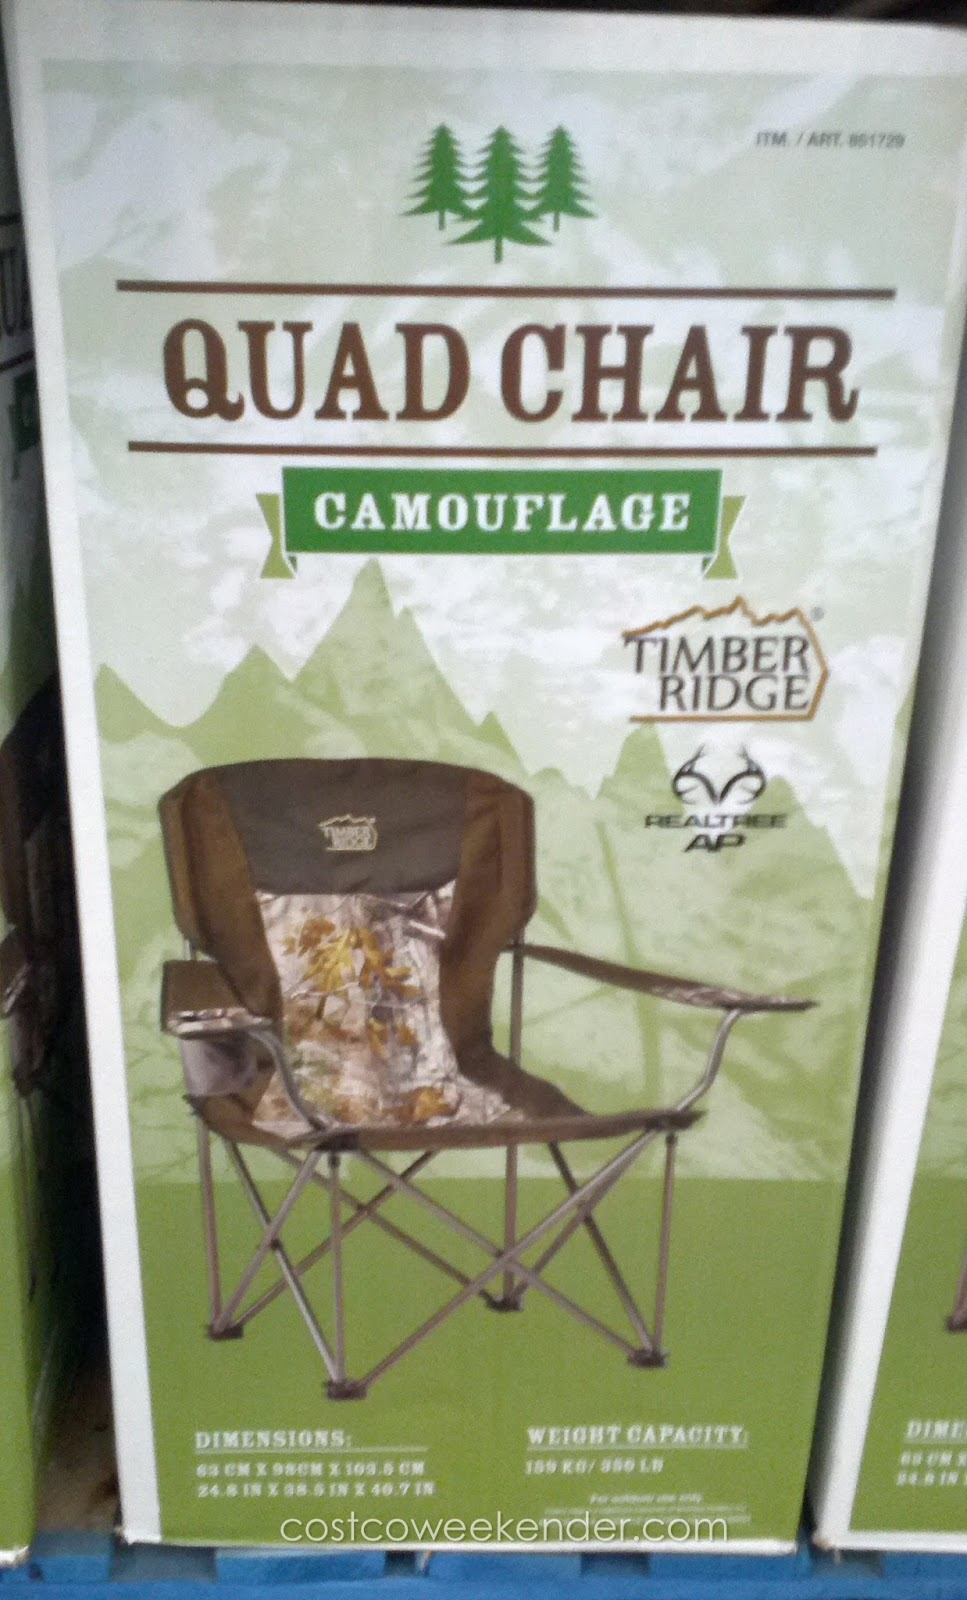 Timber Ridge Camouflage Quad Chair  Costco Weekender